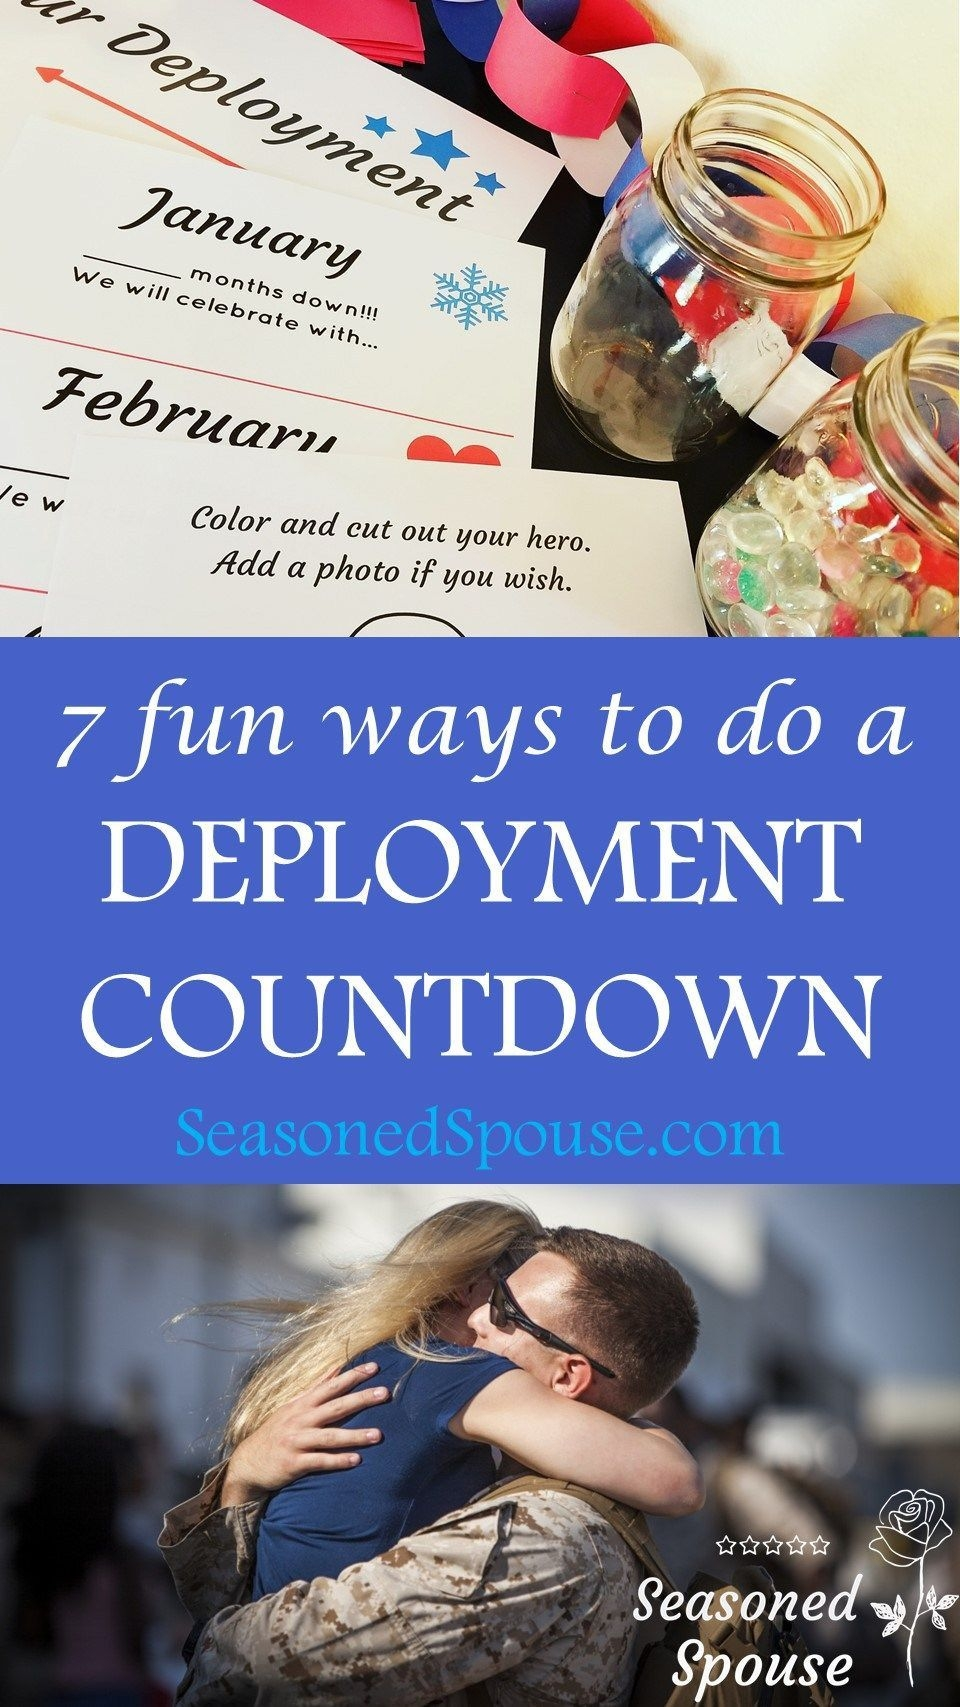 Deployment Countdown Displays Seasoned Spouse | Deployment